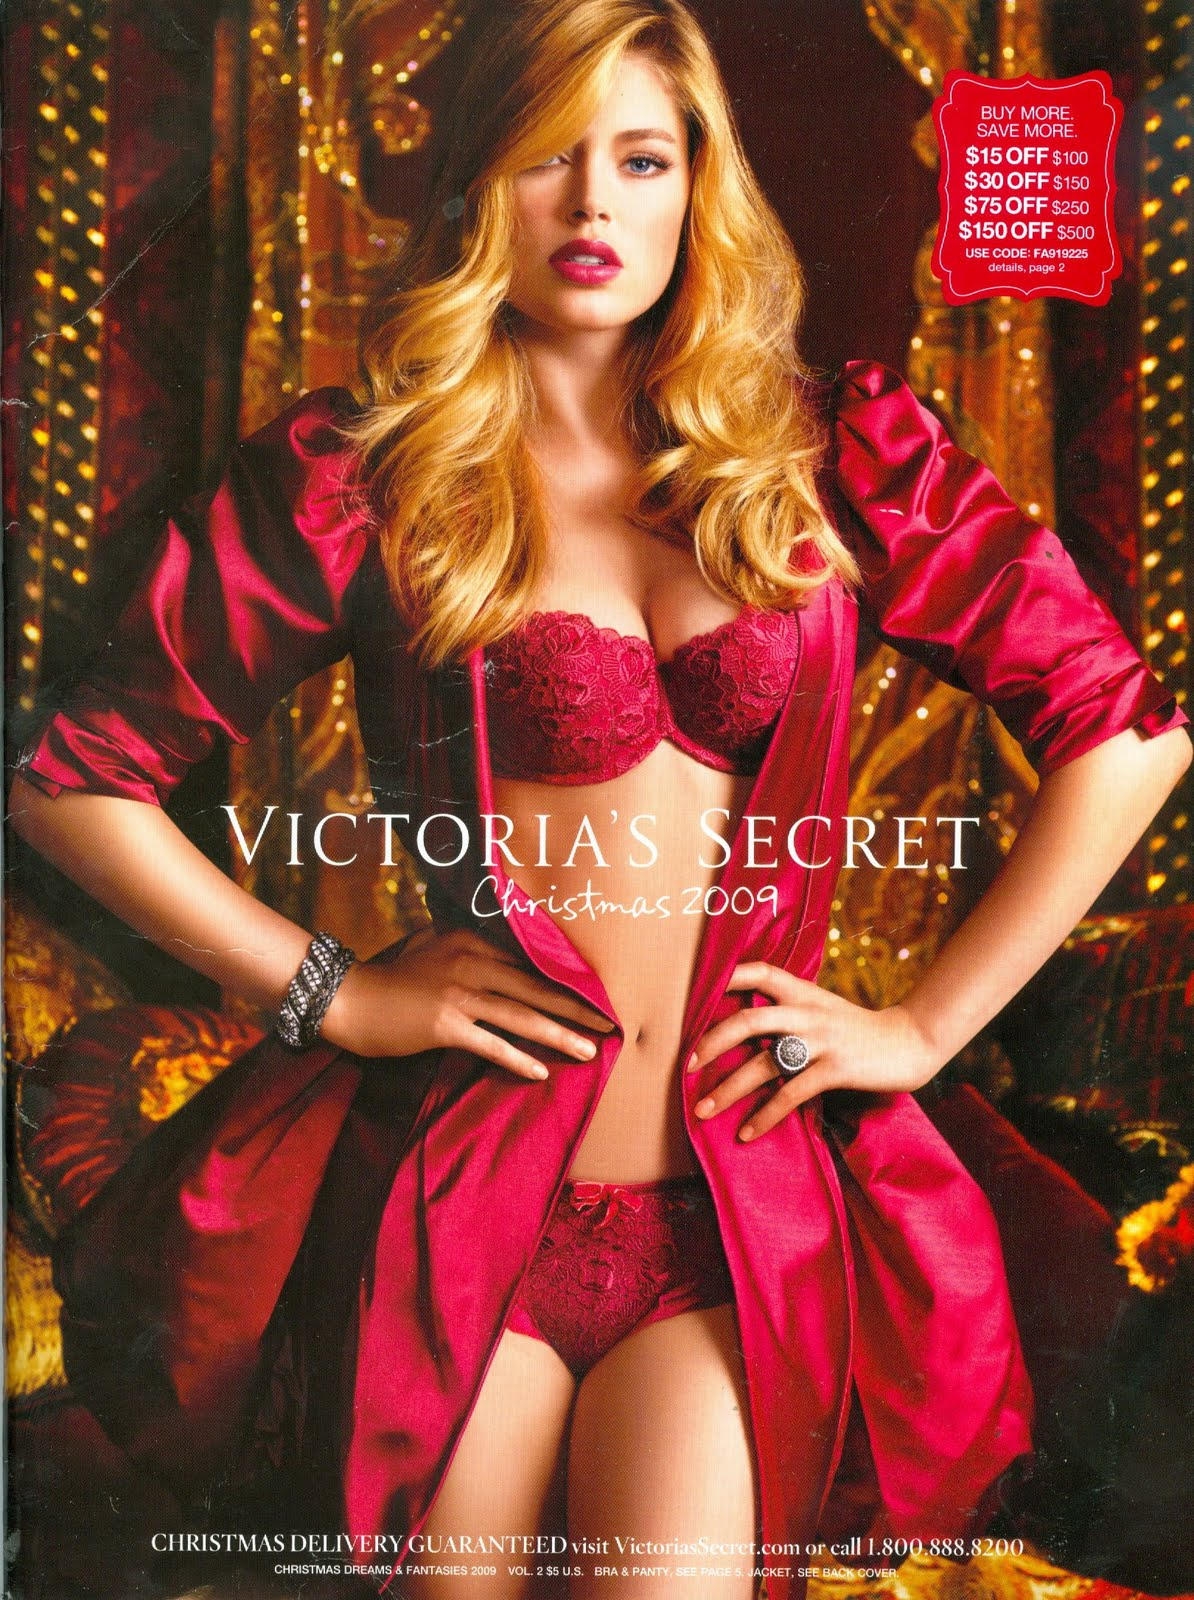 Victoria's Secret Comes To London